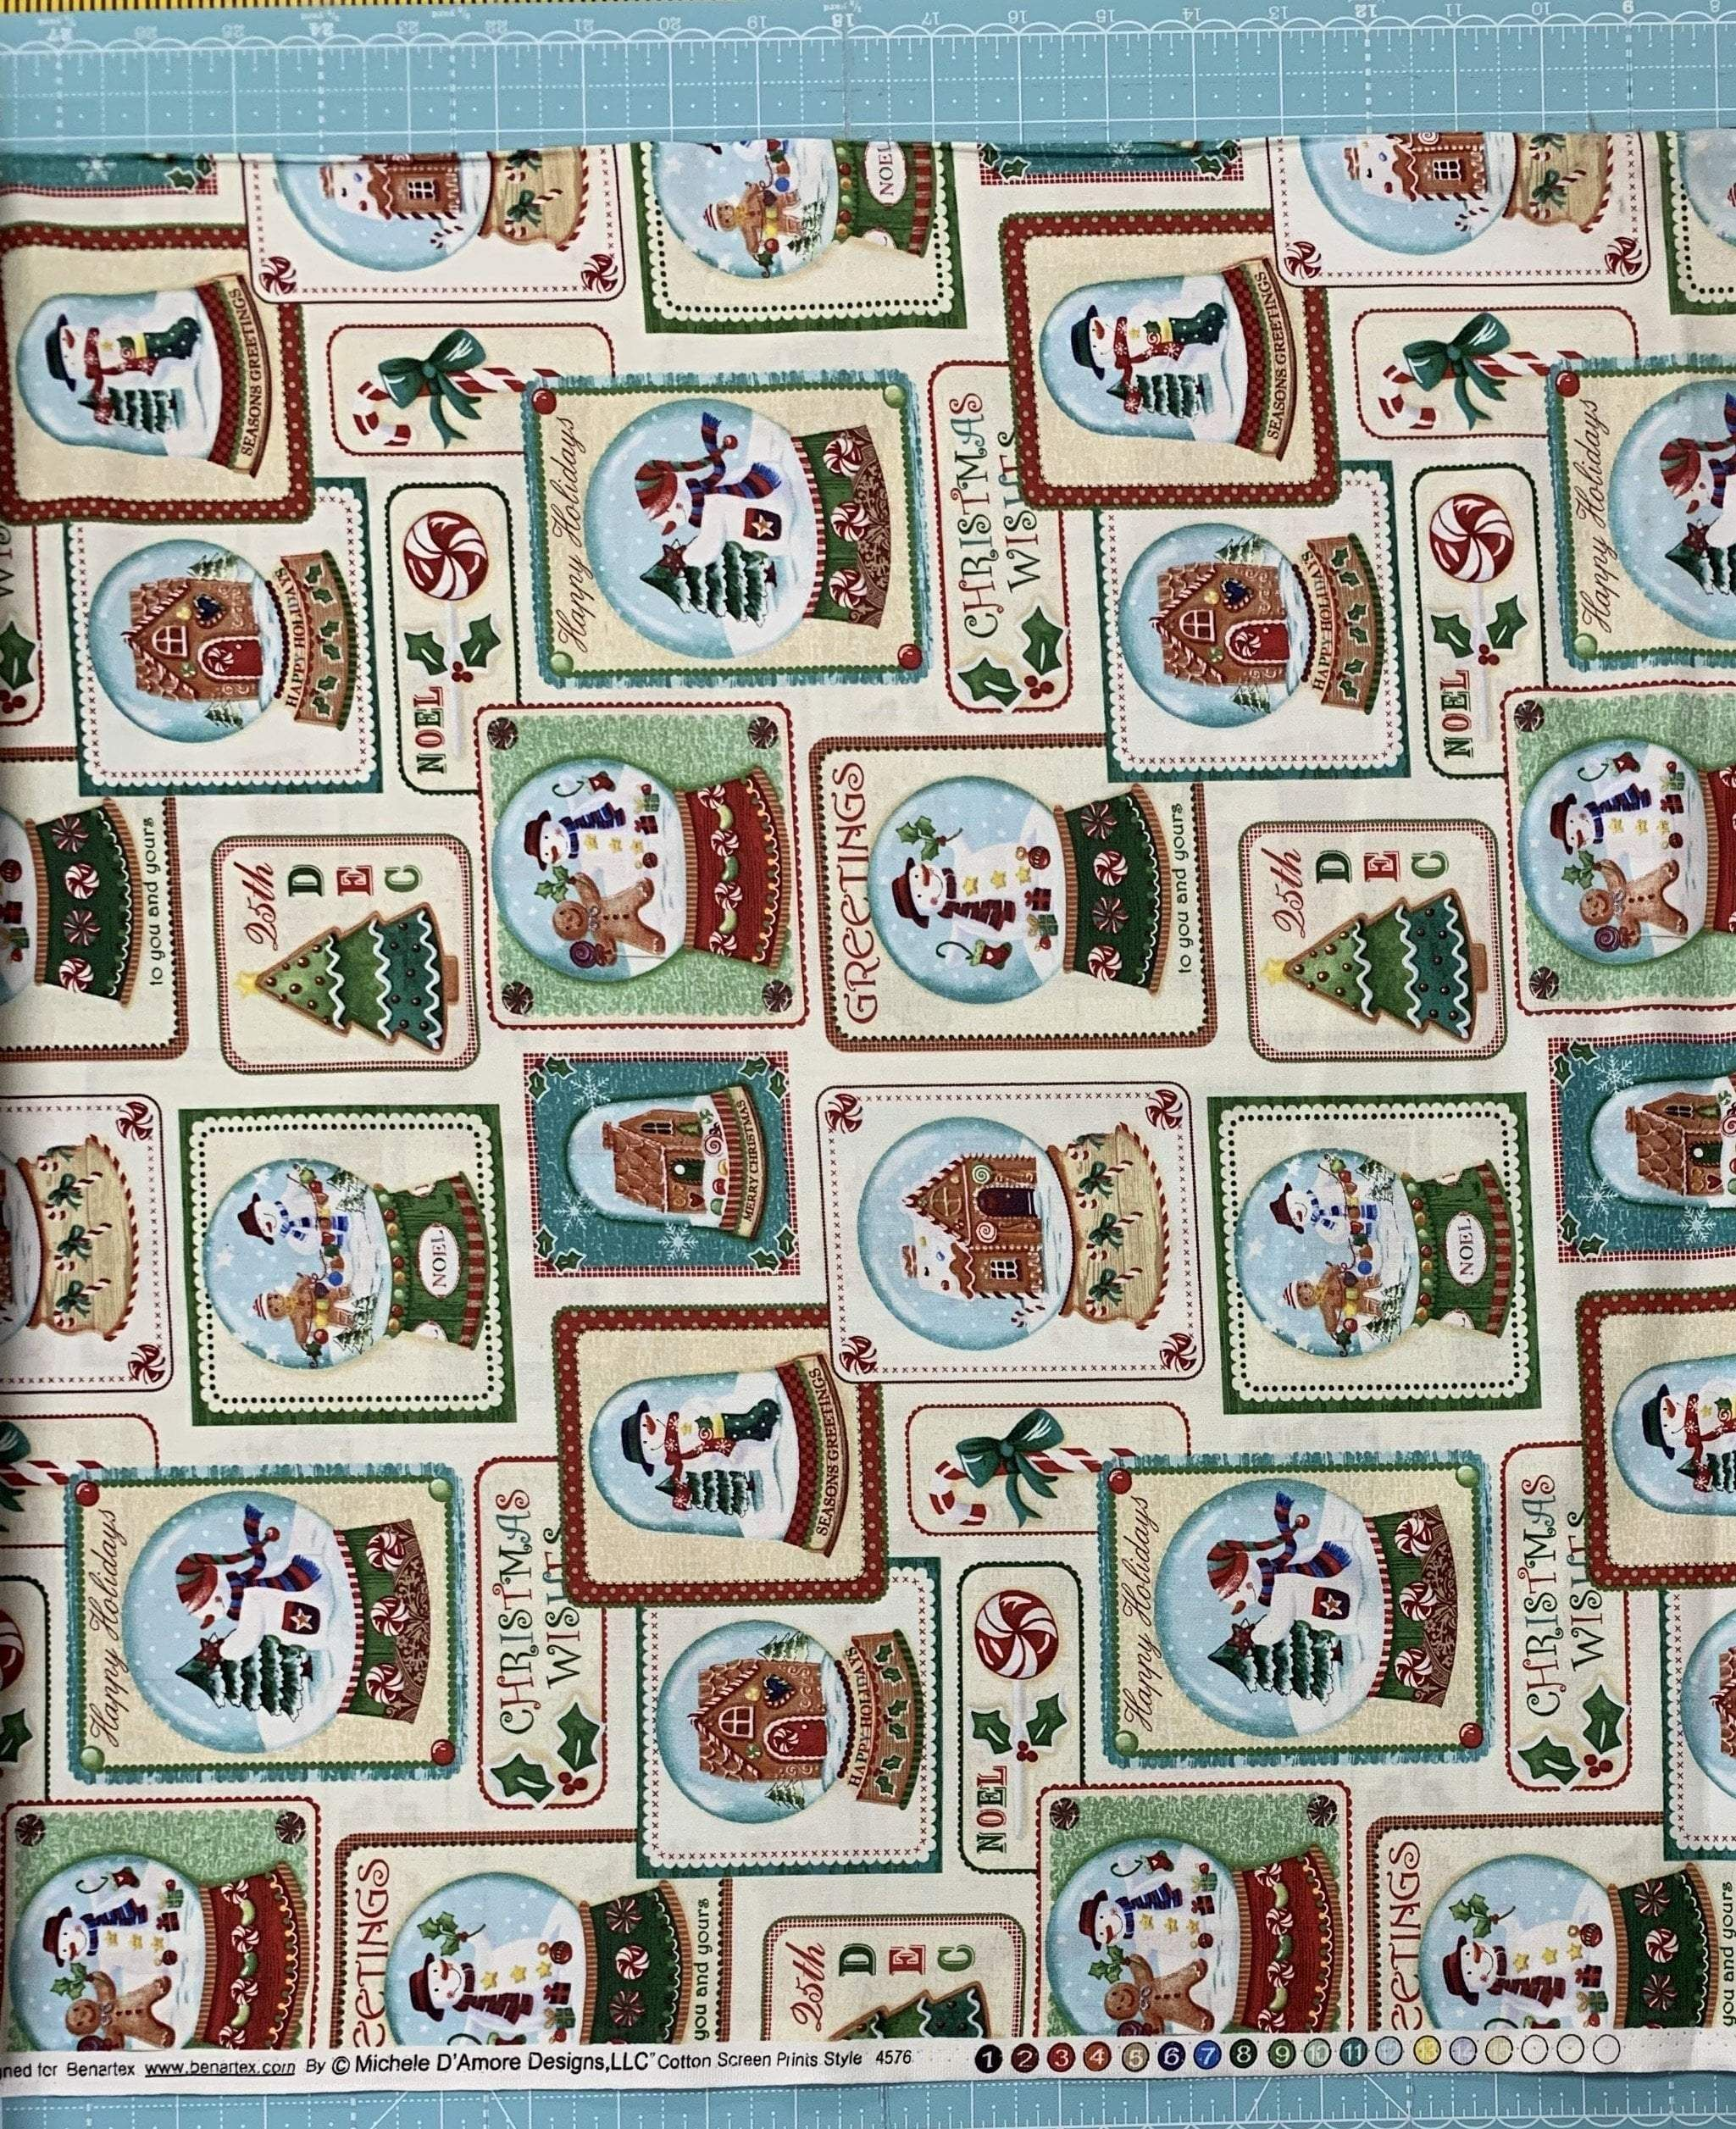 Happy Holidays Snowmen - Per Yard - Benartex - Holiday Collection by Michael D'Amore - Gift Tags or Blocks!  #easypattern #benartex #quiltingfabric #layercake #jellyroll #vintagechristmas #quilt #supplies #quilting #RebsFabStash